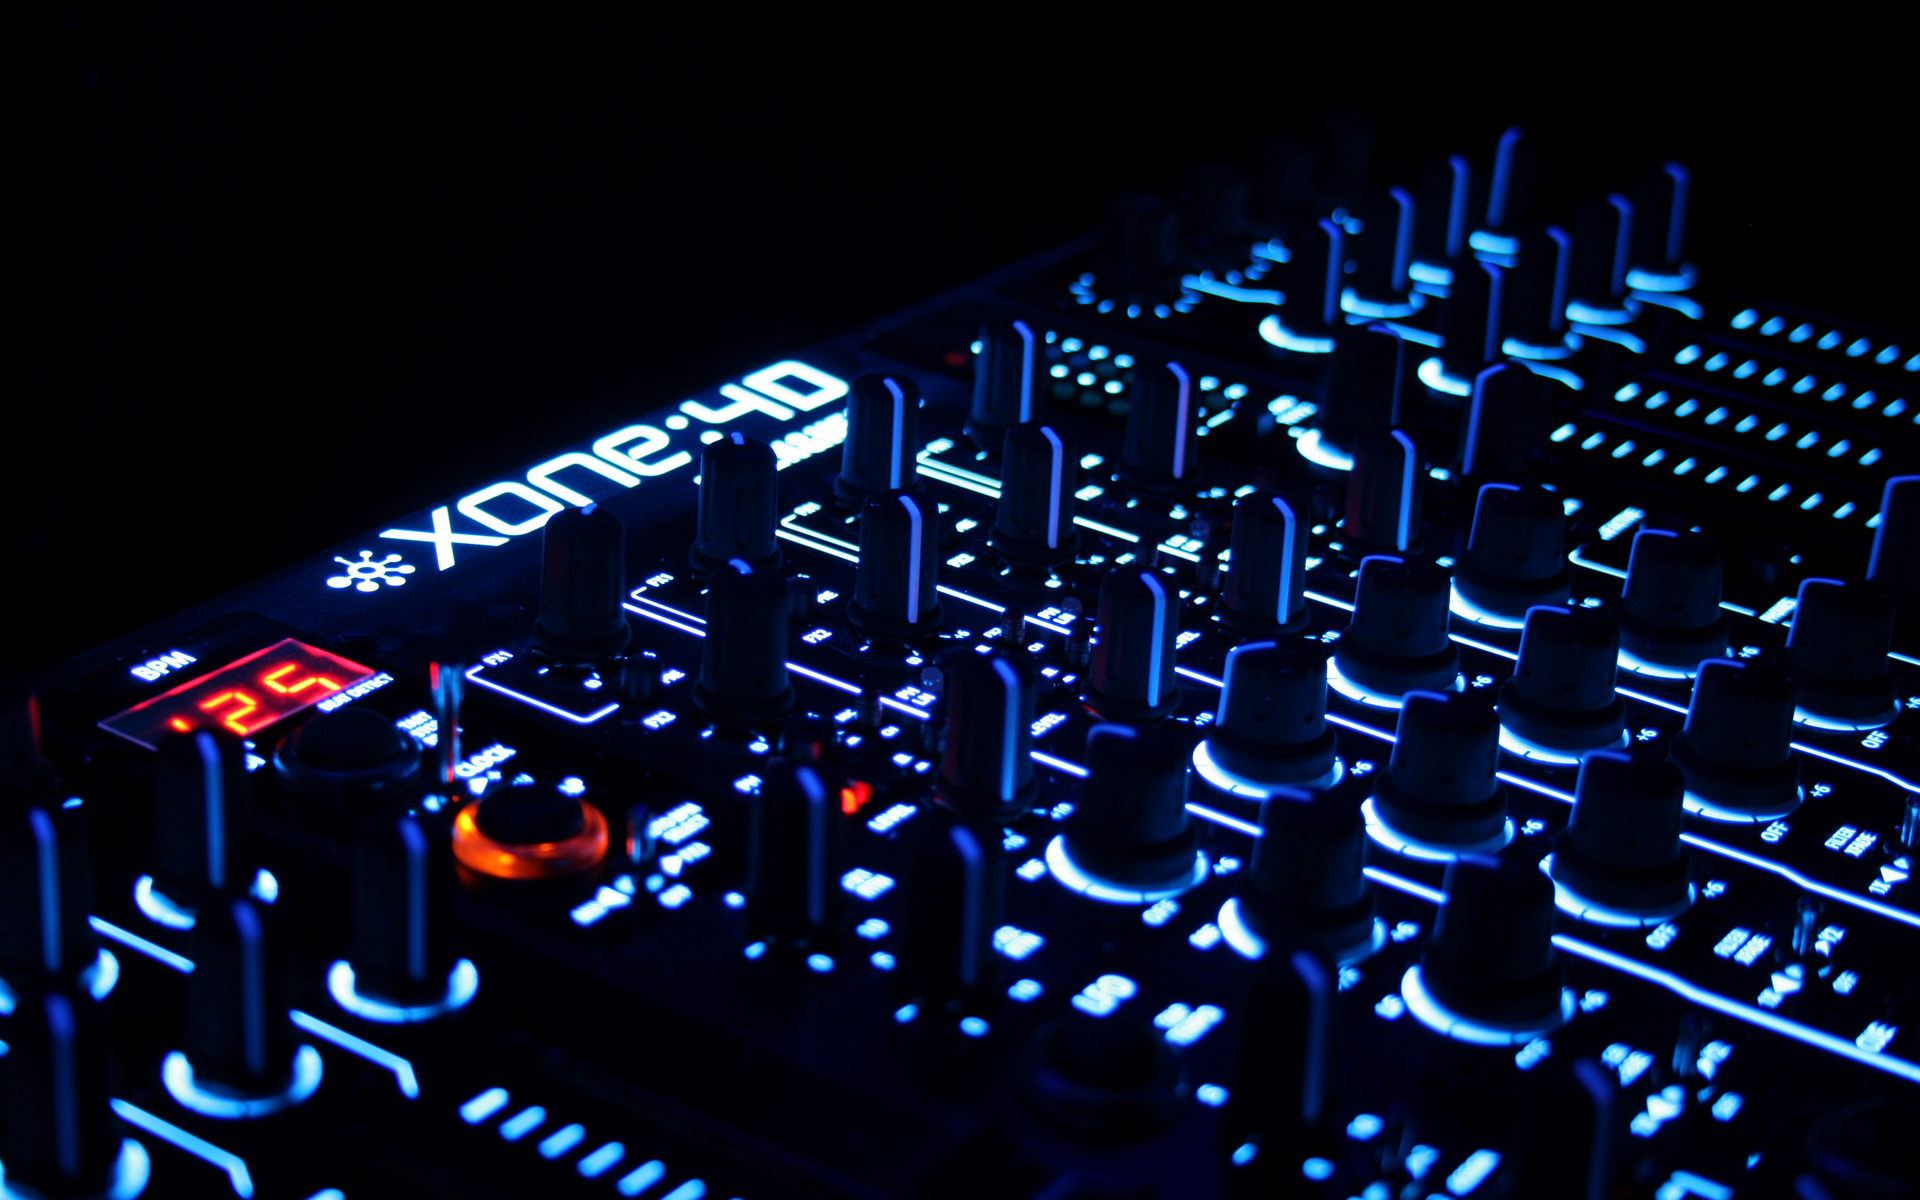 Pioneer Dj Mixers Wallpapers 1920 X 1200